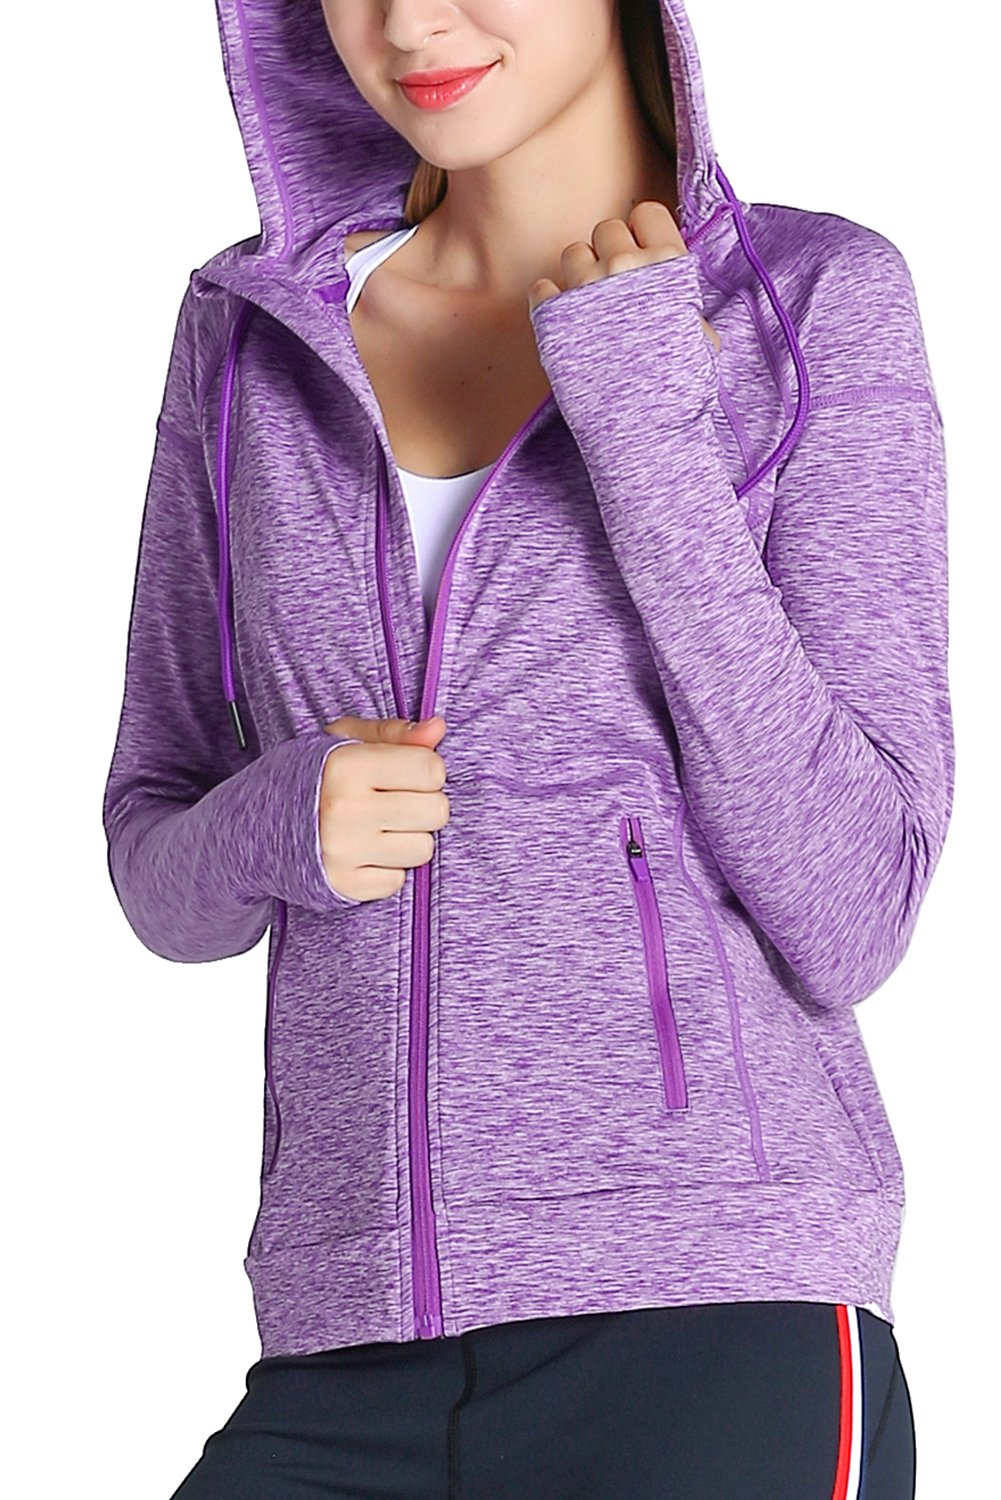 Fastorm Womens Full Zip Athletic Jacket Hoodie Activewear Workout Sweatshirt Track Jackets with Thumb Holes Purple L by Fastorm